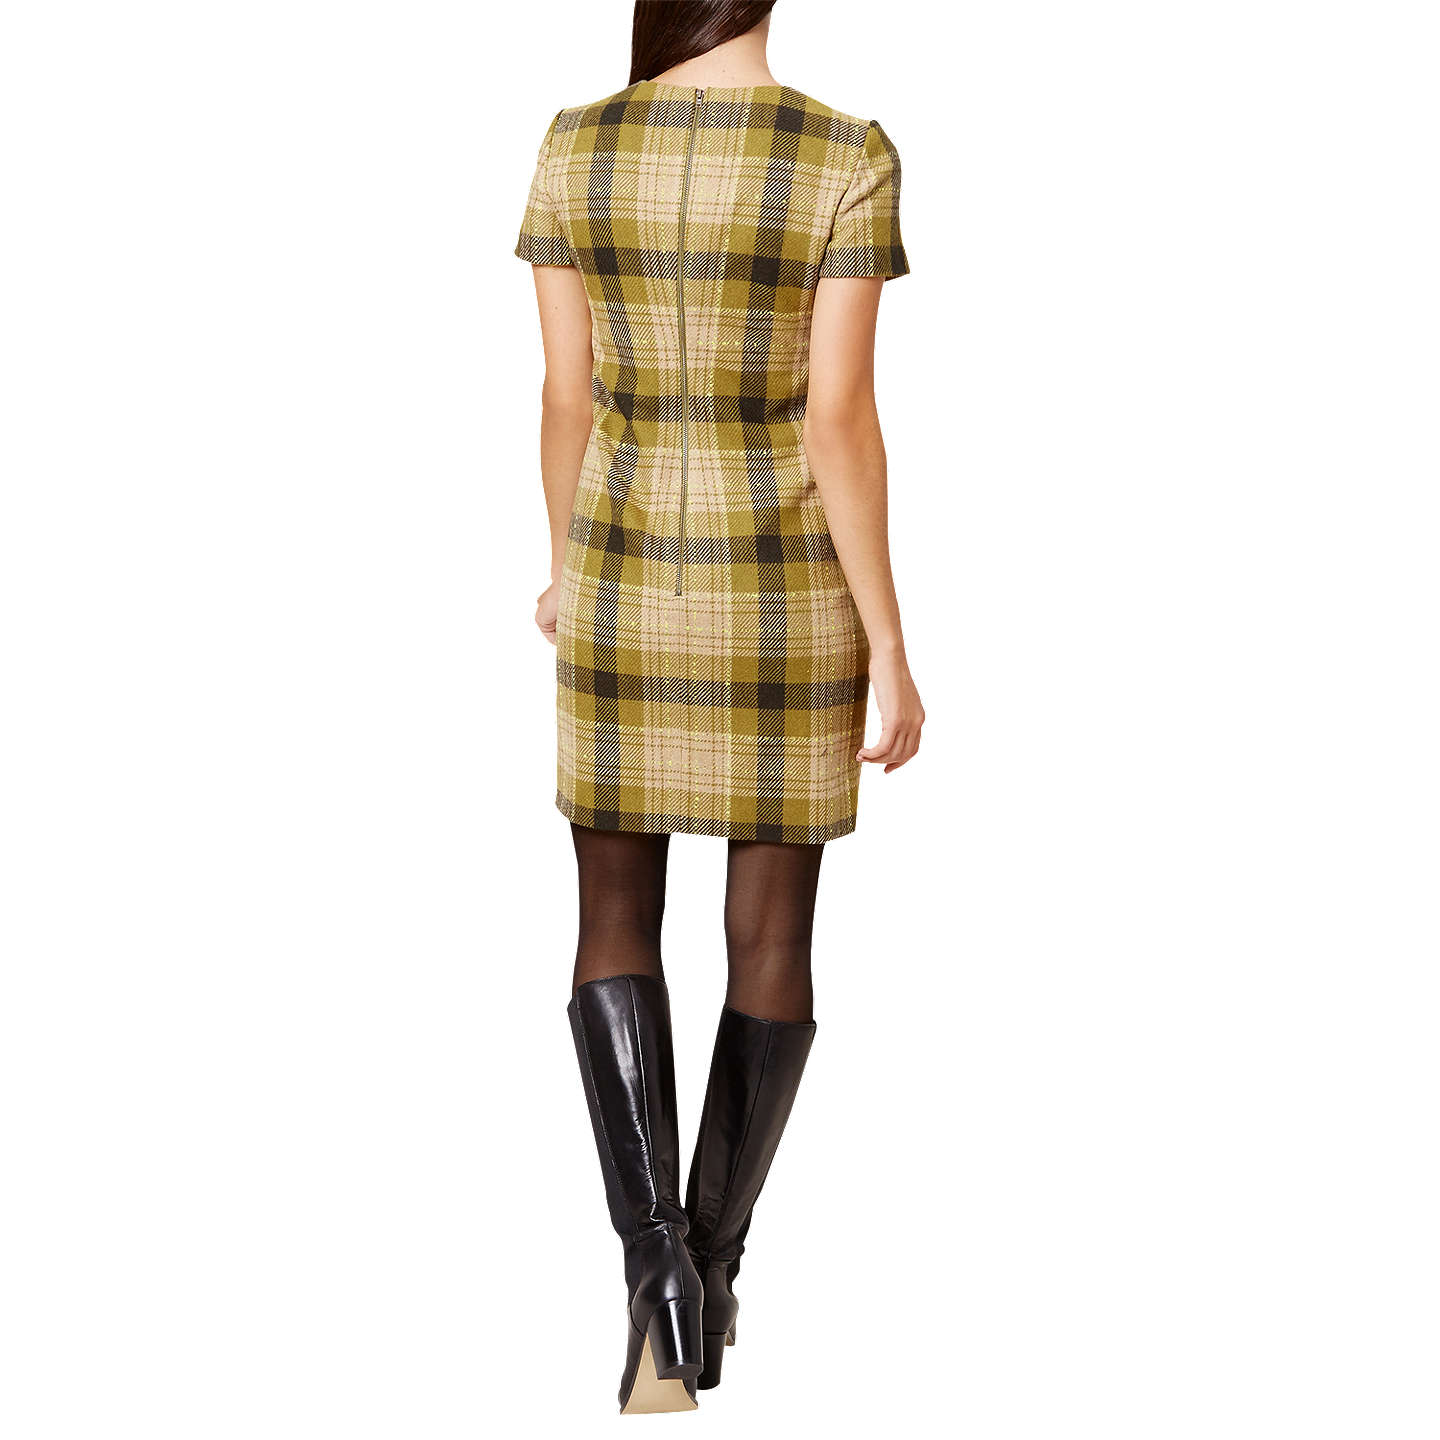 BuyHobbs Carr Check Dress, Olive Multi, 6 Online at johnlewis.com